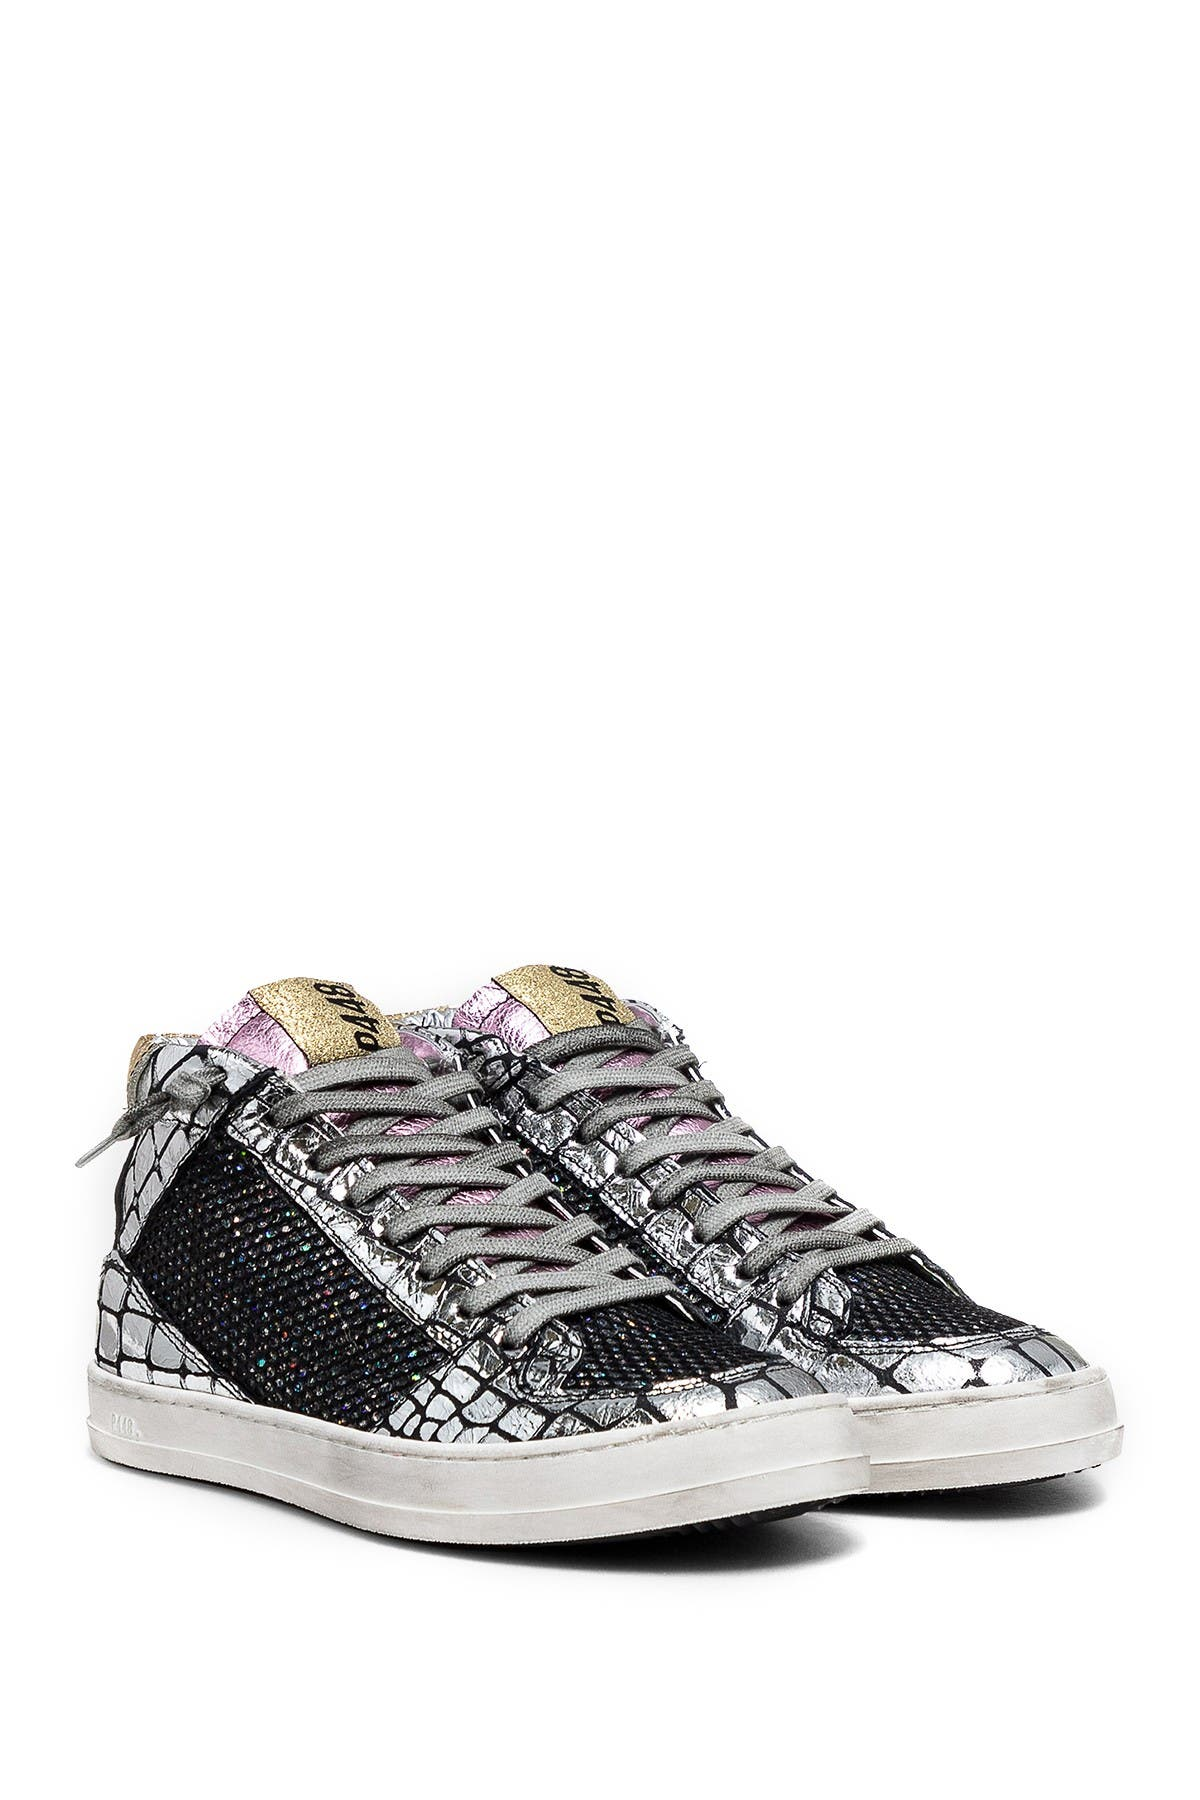 P448 | Queens Printed Leather Mid